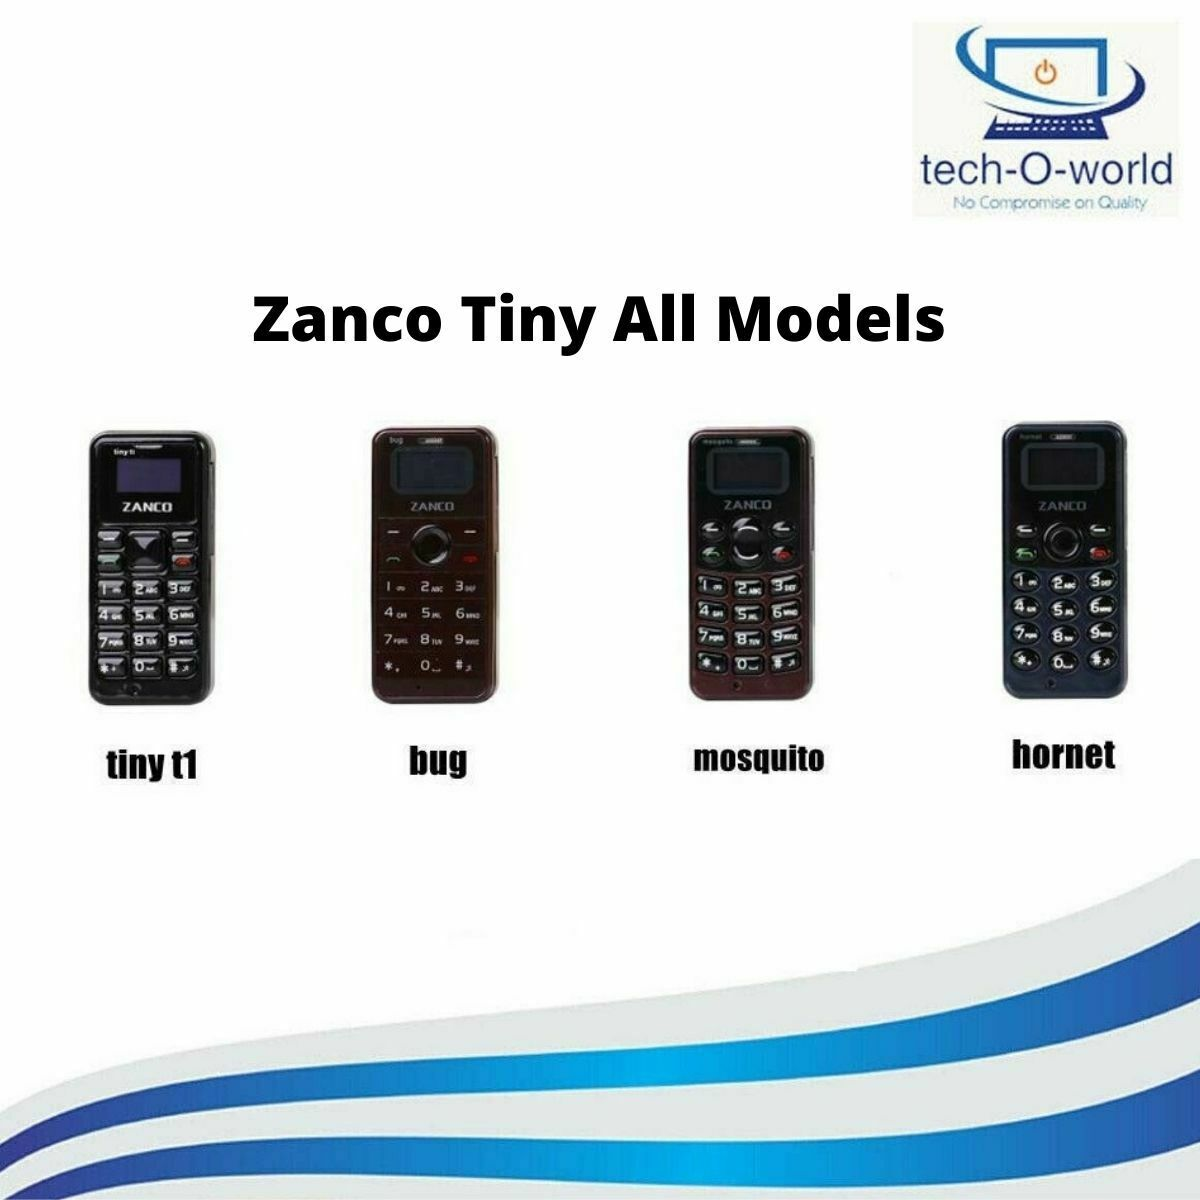 Android Phone - ZANCO TINY MOBILE PHONE WORLDS SMALLEST PHONE GADGET MINI 4 Different Models